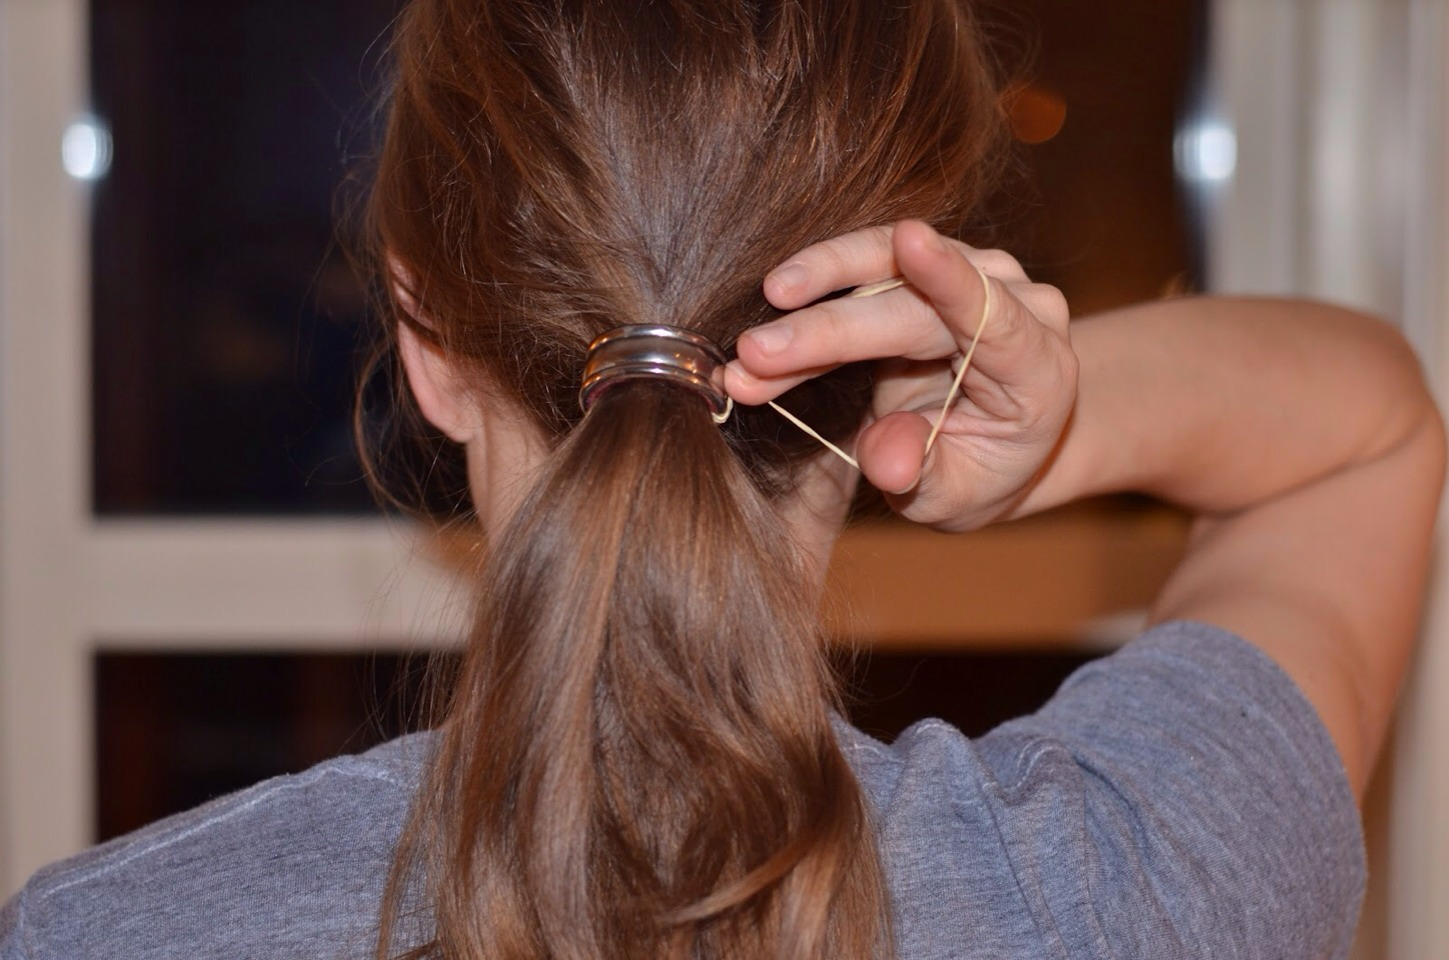 Don't ever use rubber band to hold up a ponytail, it can cause breakage and split ends